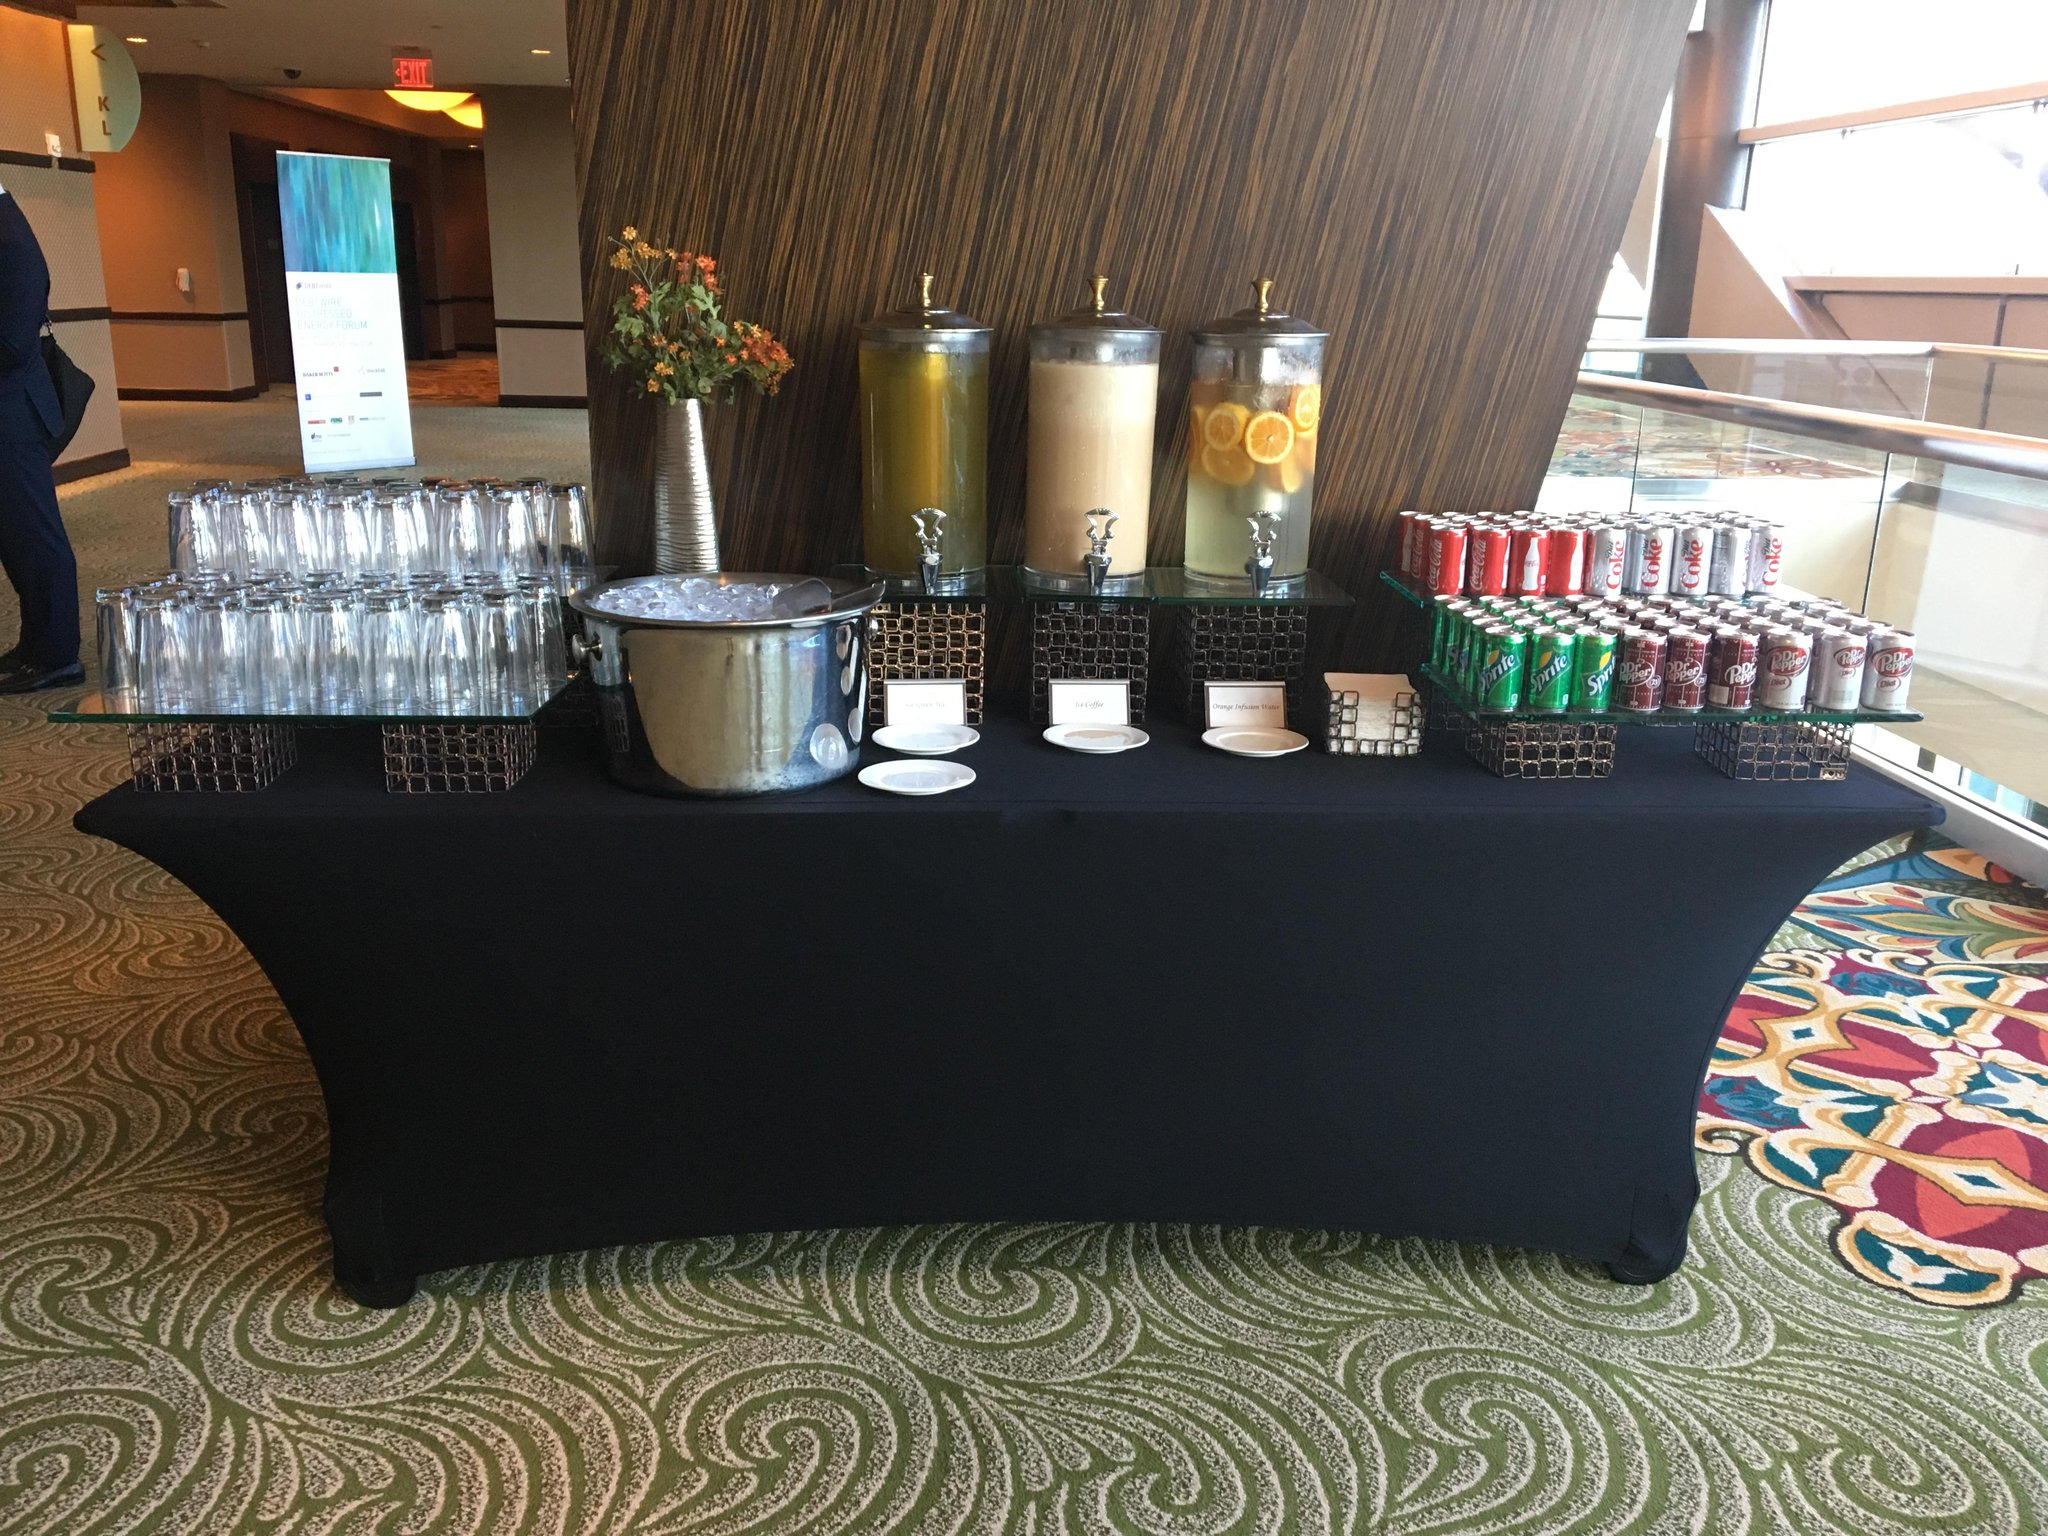 While attendees are getting ready for their #networking break at #DWEnergy16 we have refreshments ready! More events https://t.co/Hb4e0qI1g9 https://t.co/gWQlewaFbT